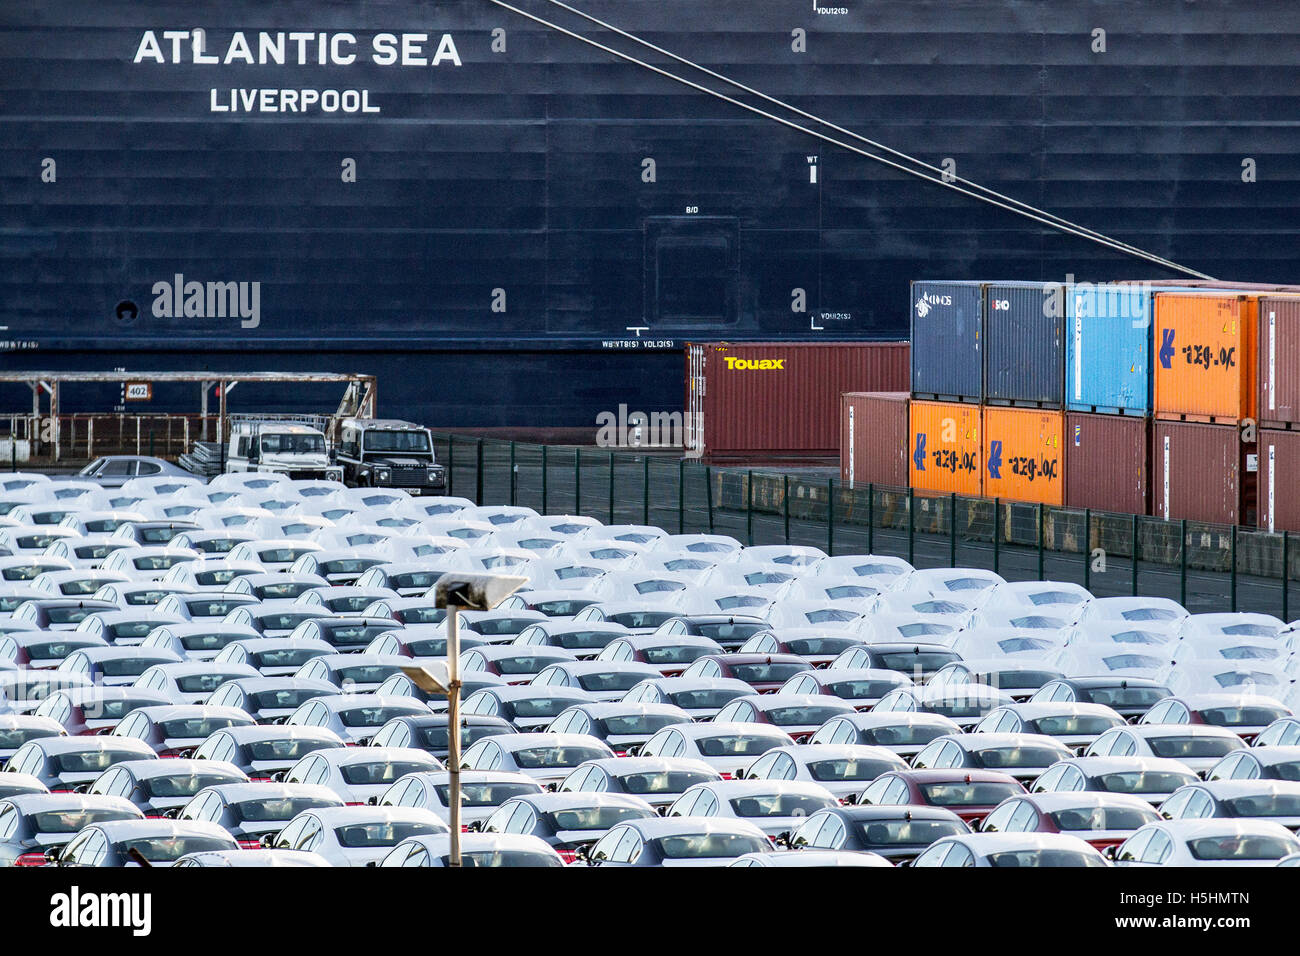 Luxury cars under wraps, wrapped for protection for export from the UK at Seaforth Docks.   White wrapped covered - Stock Image